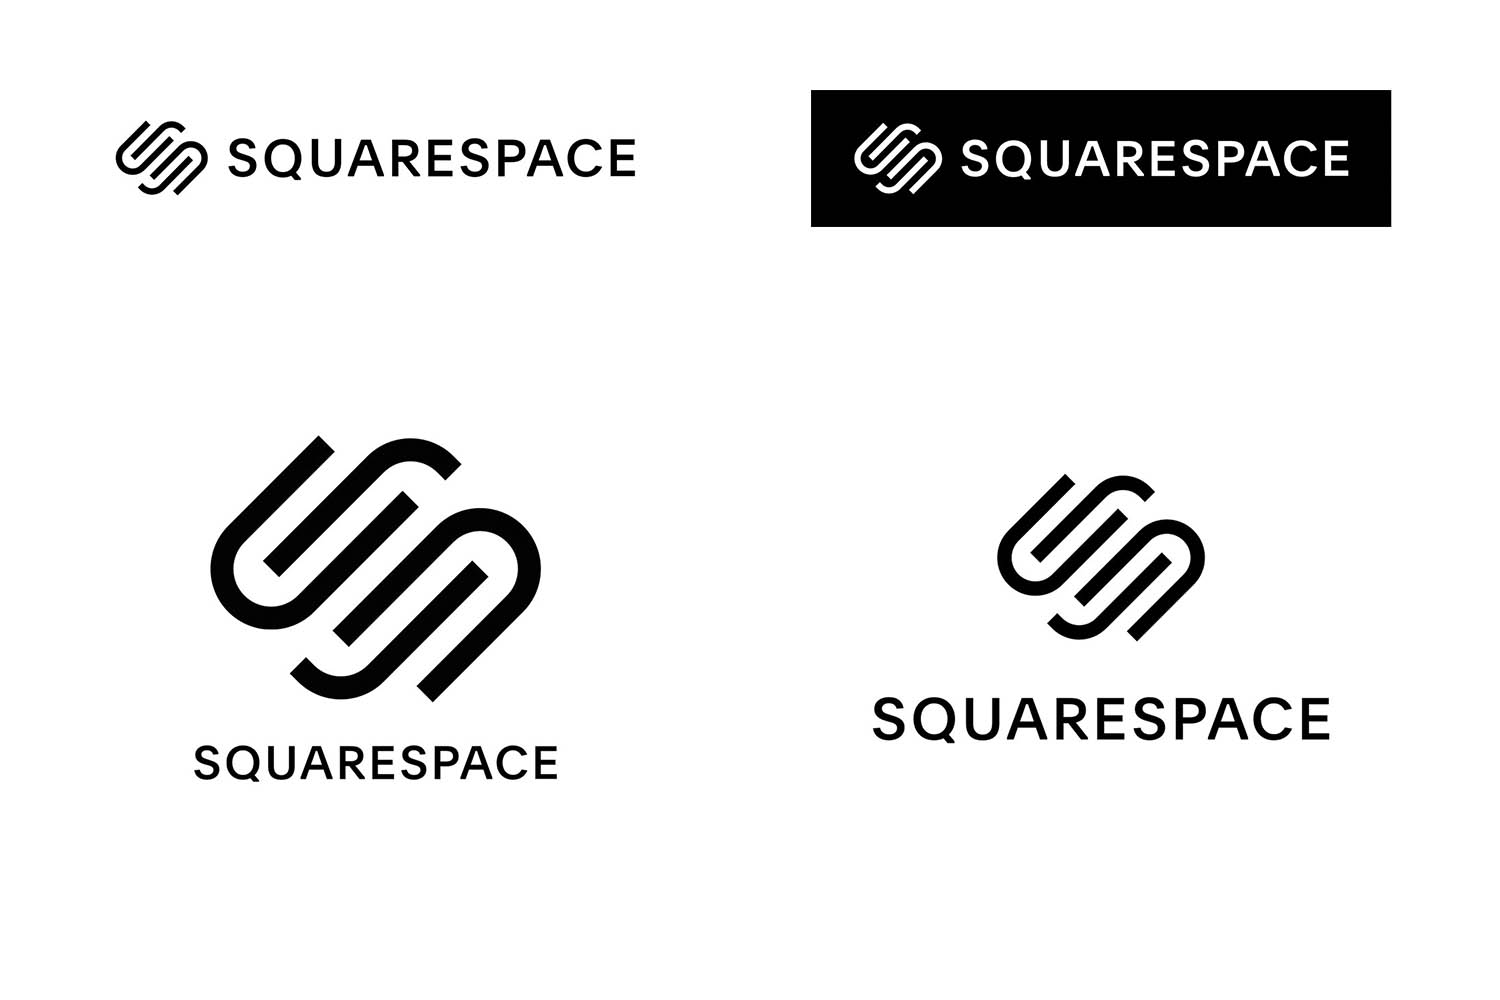 squarespace-logo-multiple-versions-strategy-driven-marketing-brand-guidelines-chicago.jpg